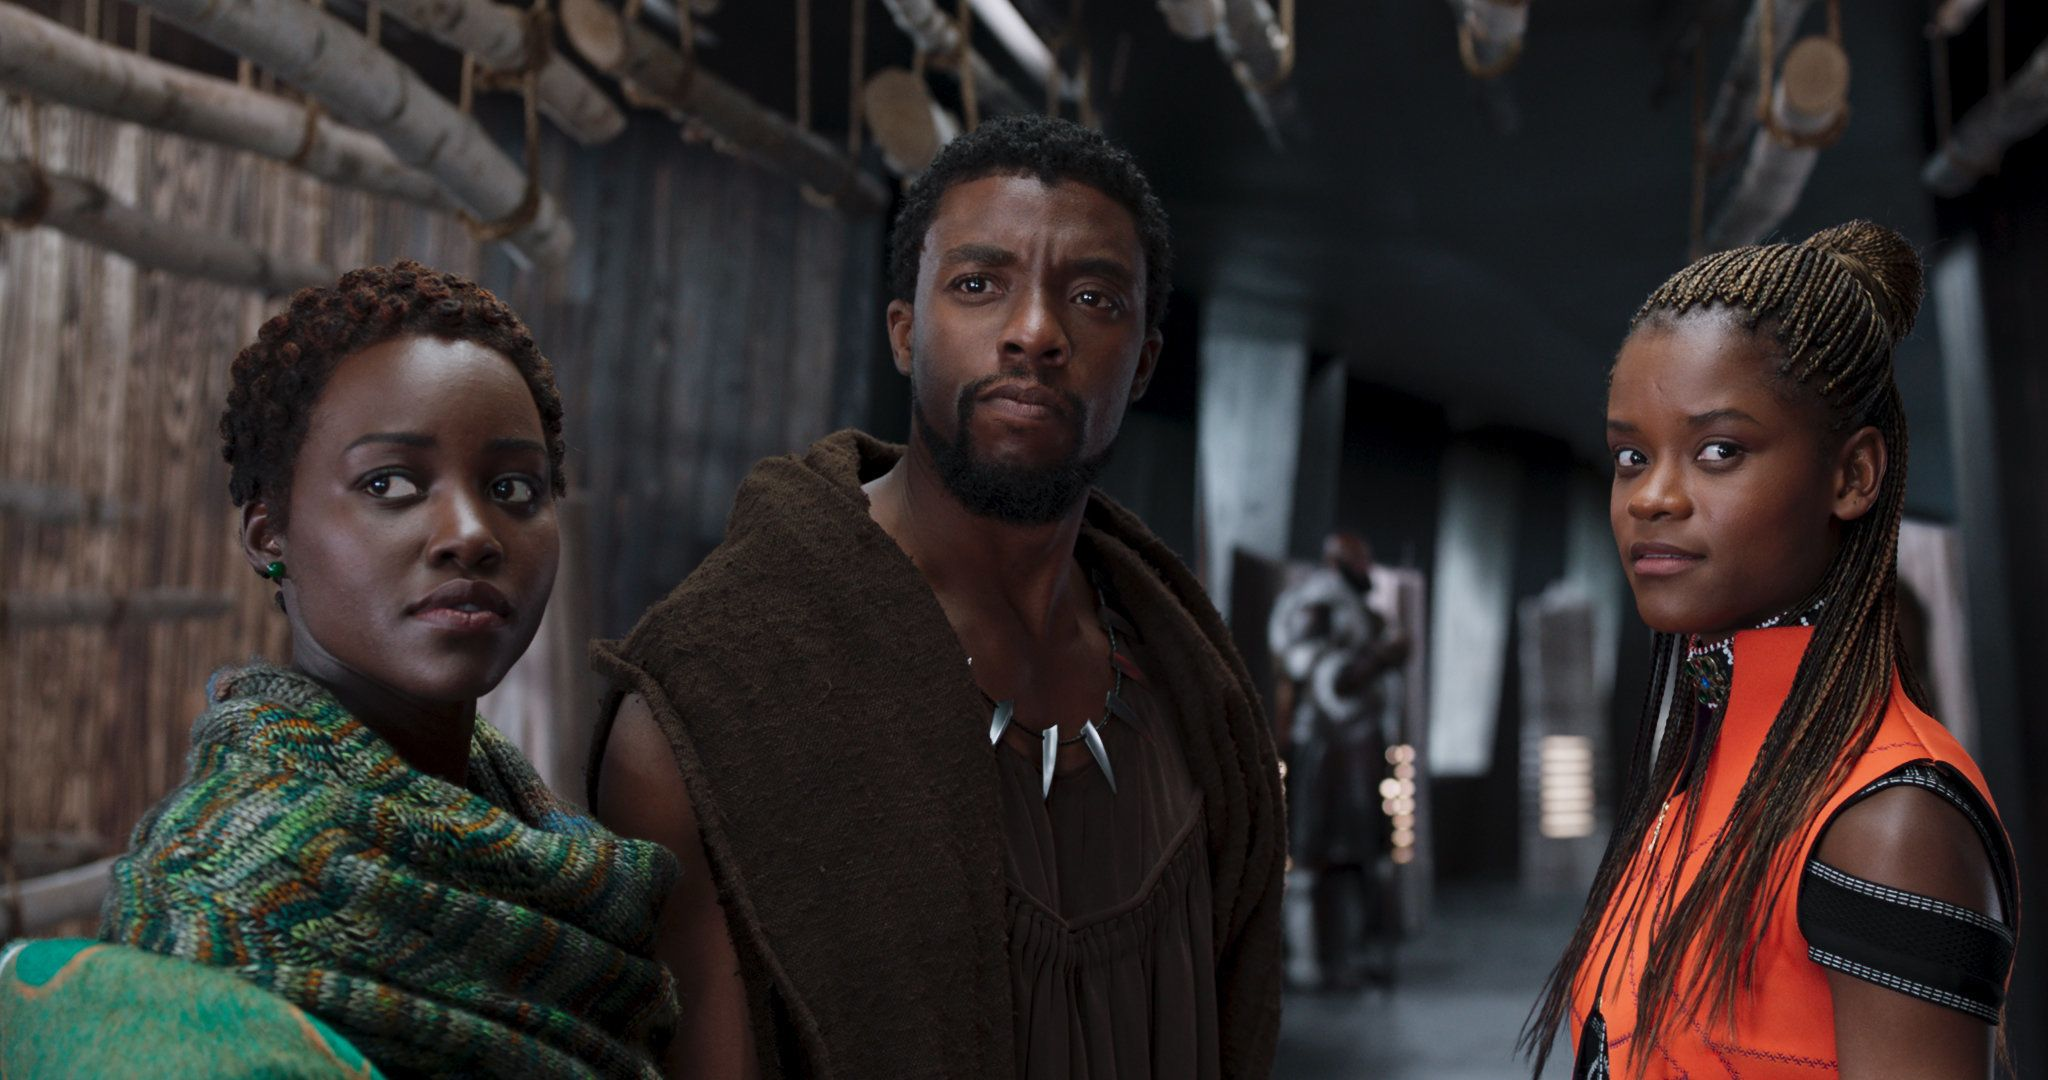 """Black Panther"" stars Lupita Nyong'o (Nakia), Chadwick Boseman (T'Challa) and Letitia Wright (Shuri), among others."